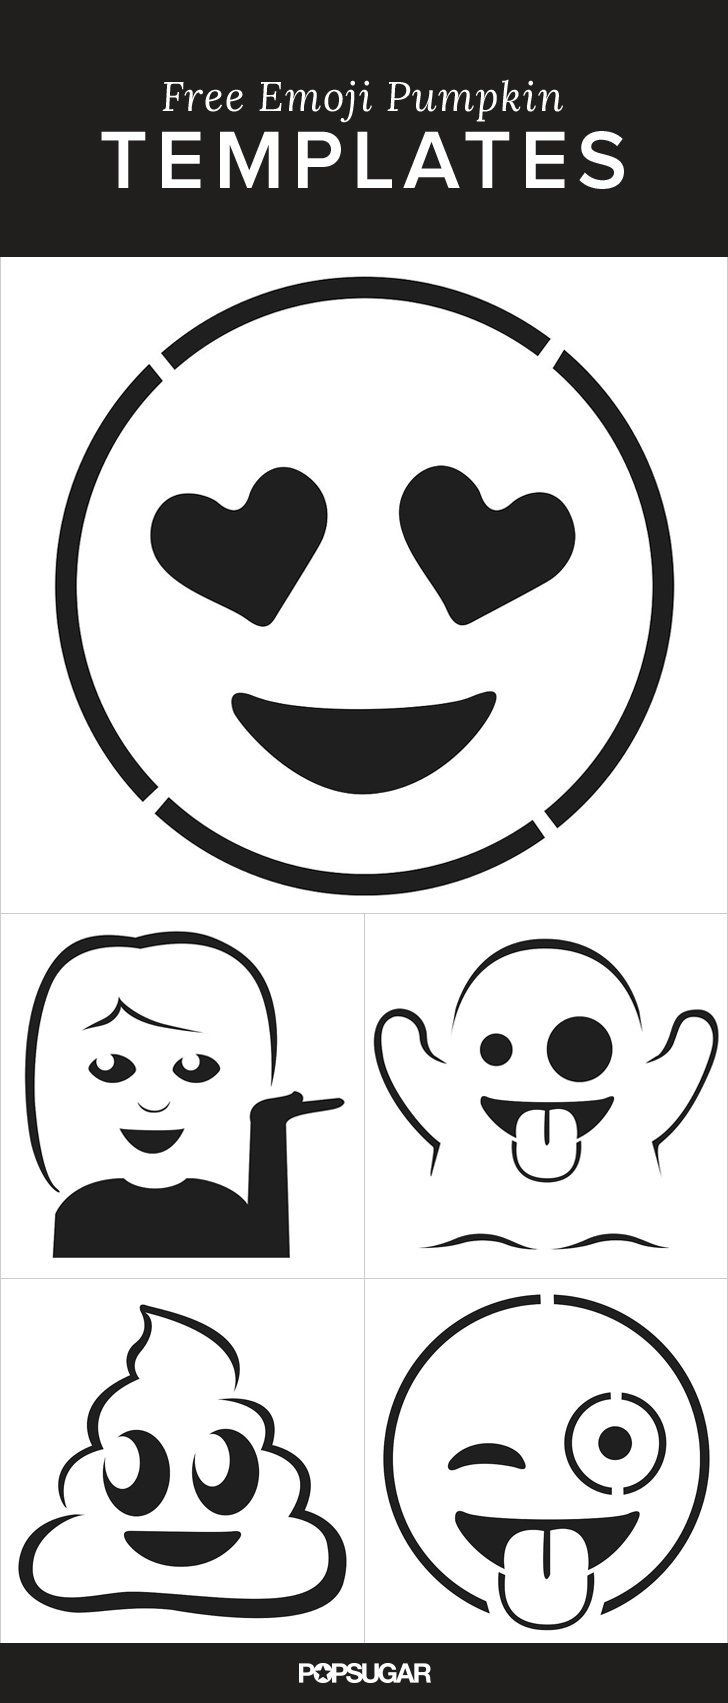 Here Are the Emoji Pumpkin Templates of Your Dreams   Pinterest ...